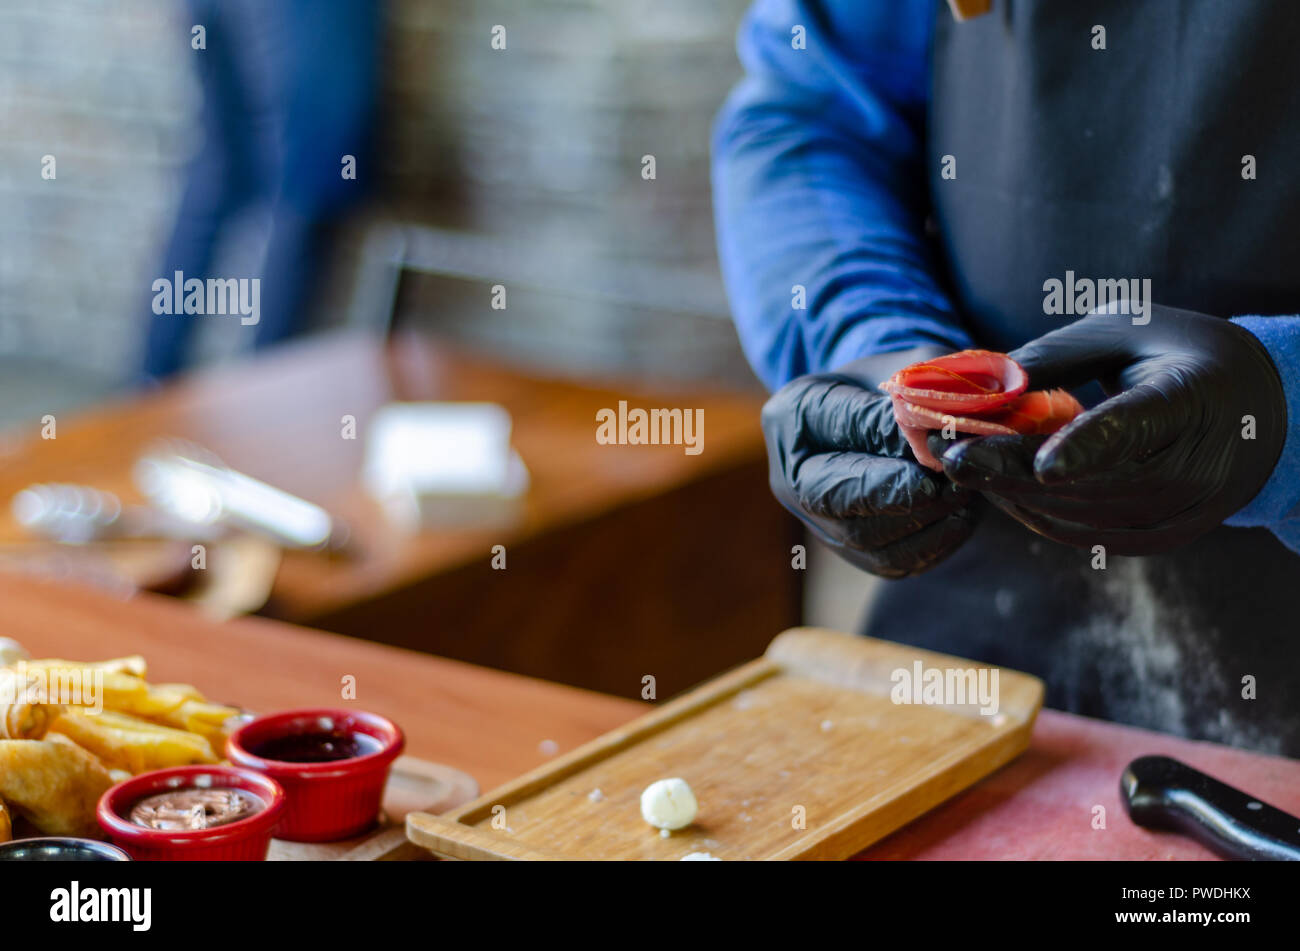 chef is preparing to put salami on the tray.Copy space,blurred background. - Stock Image